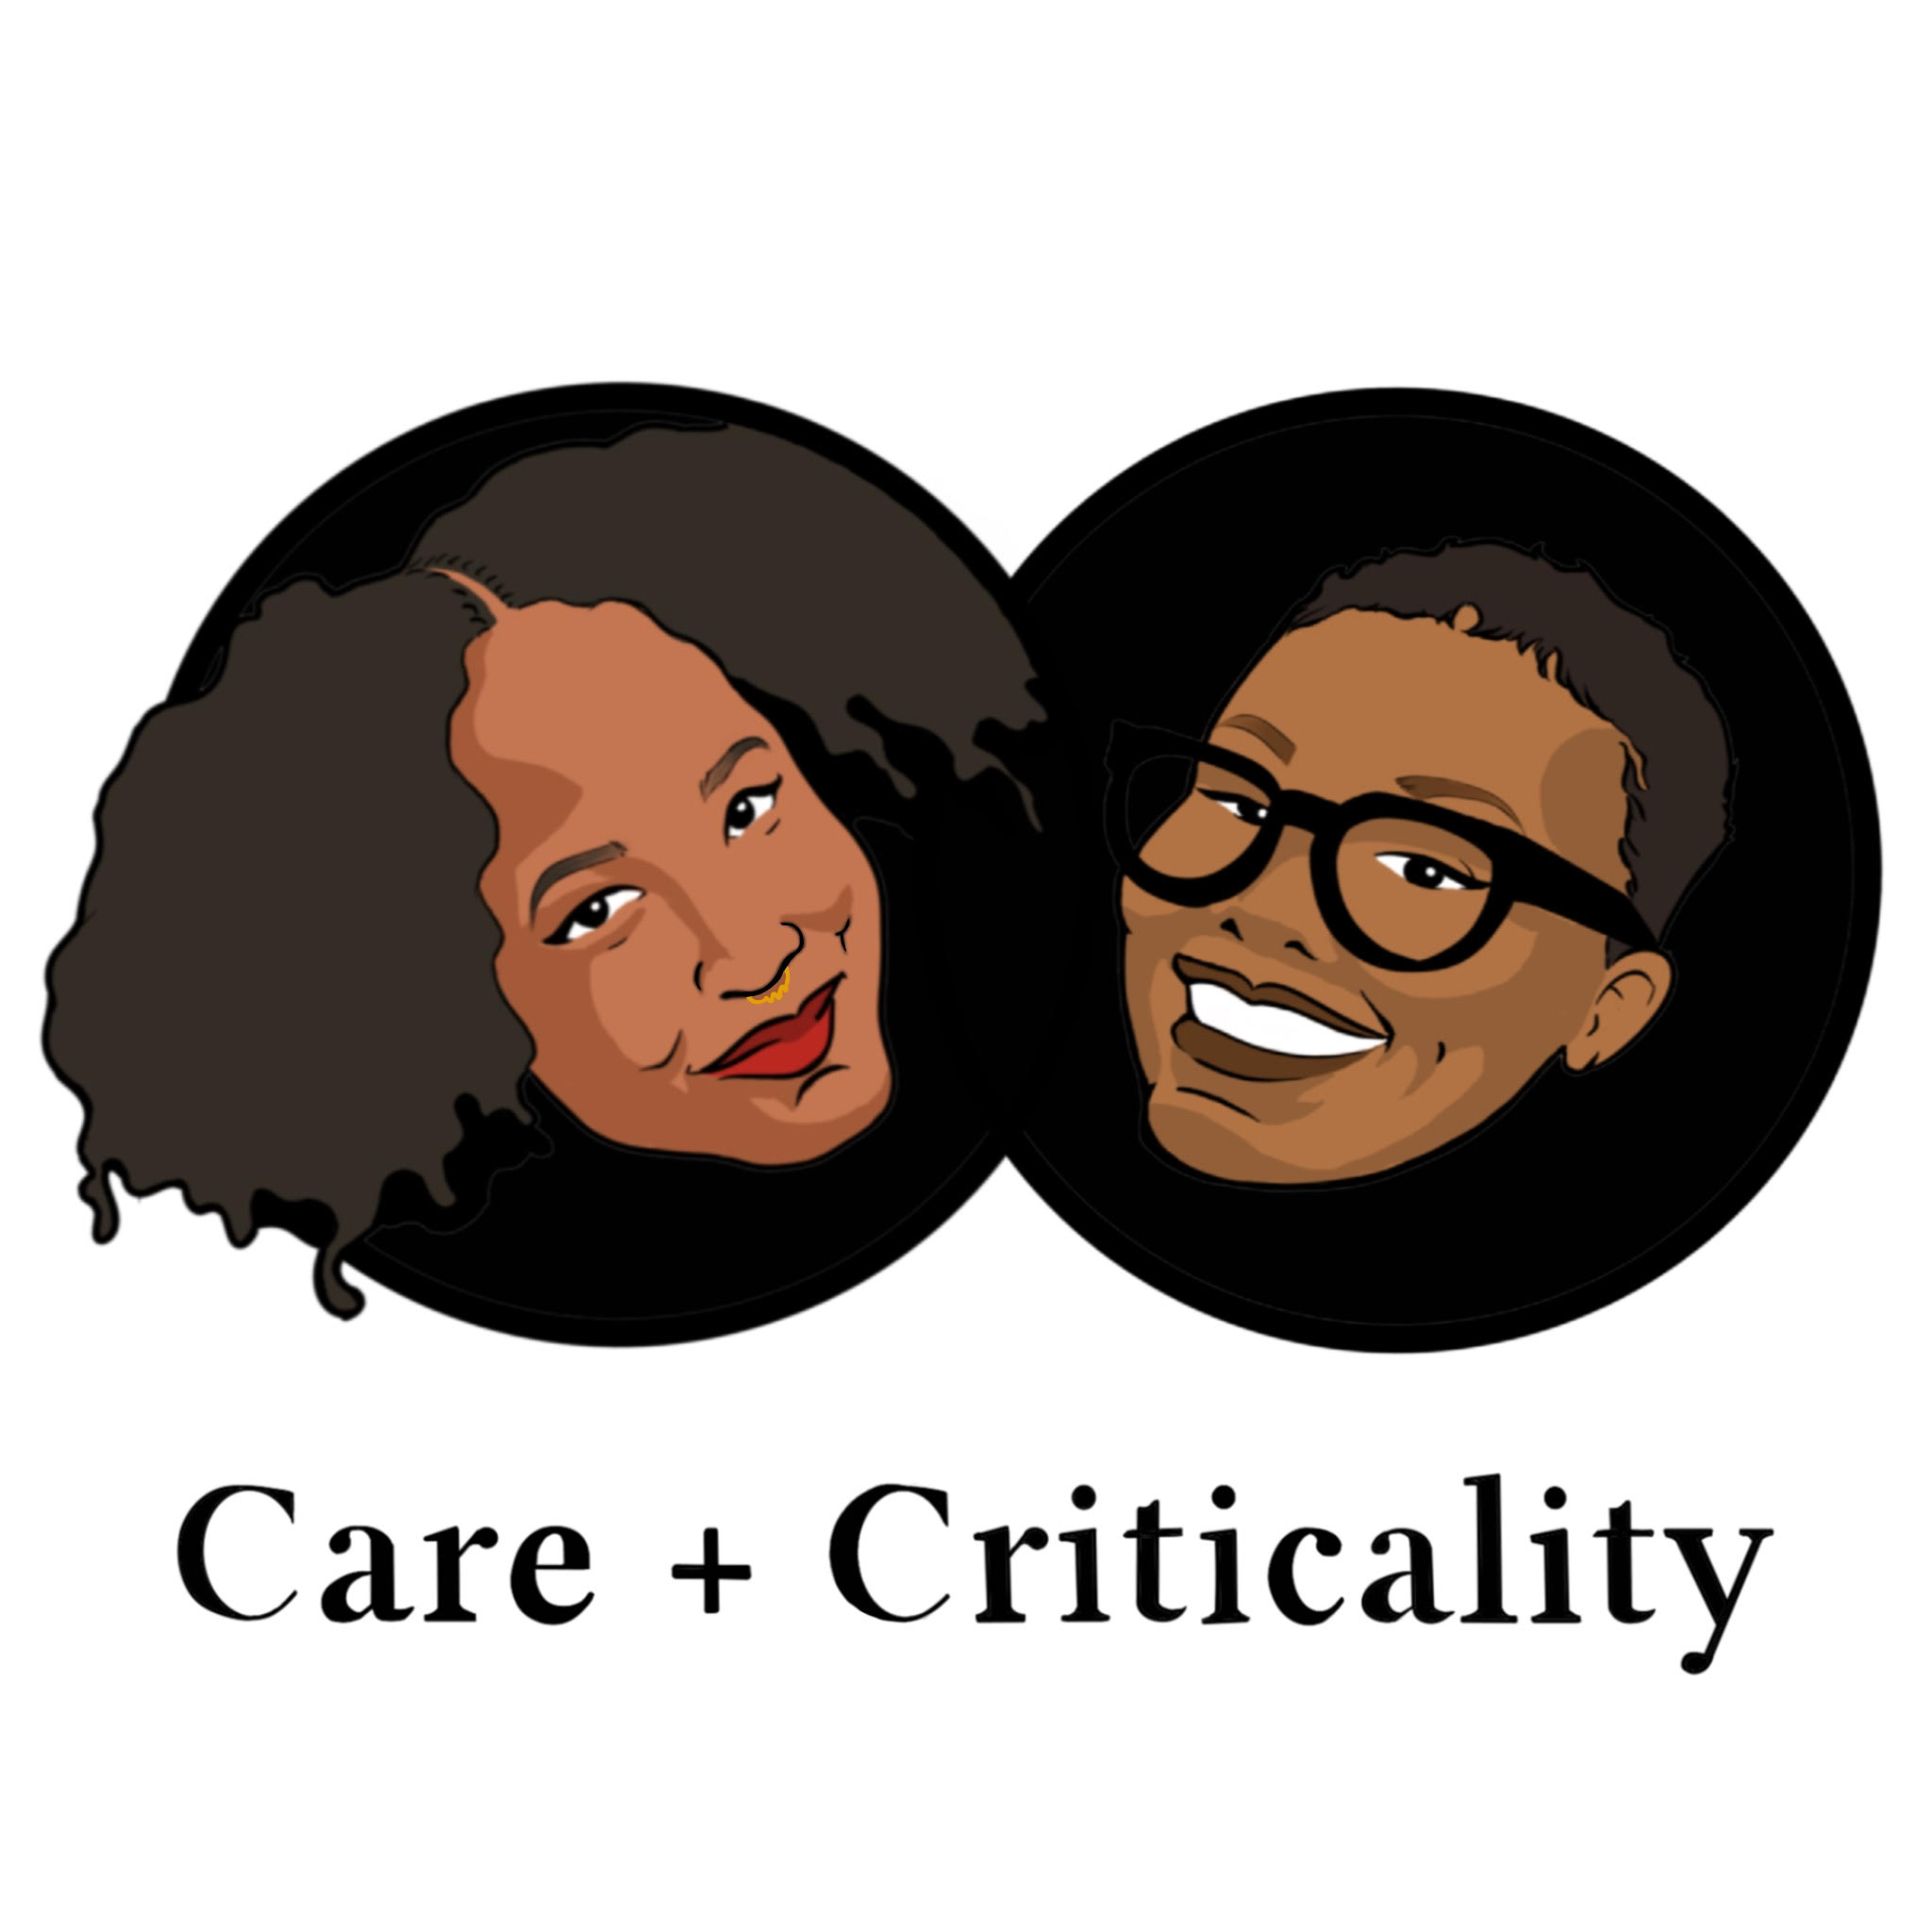 Care + Criticality